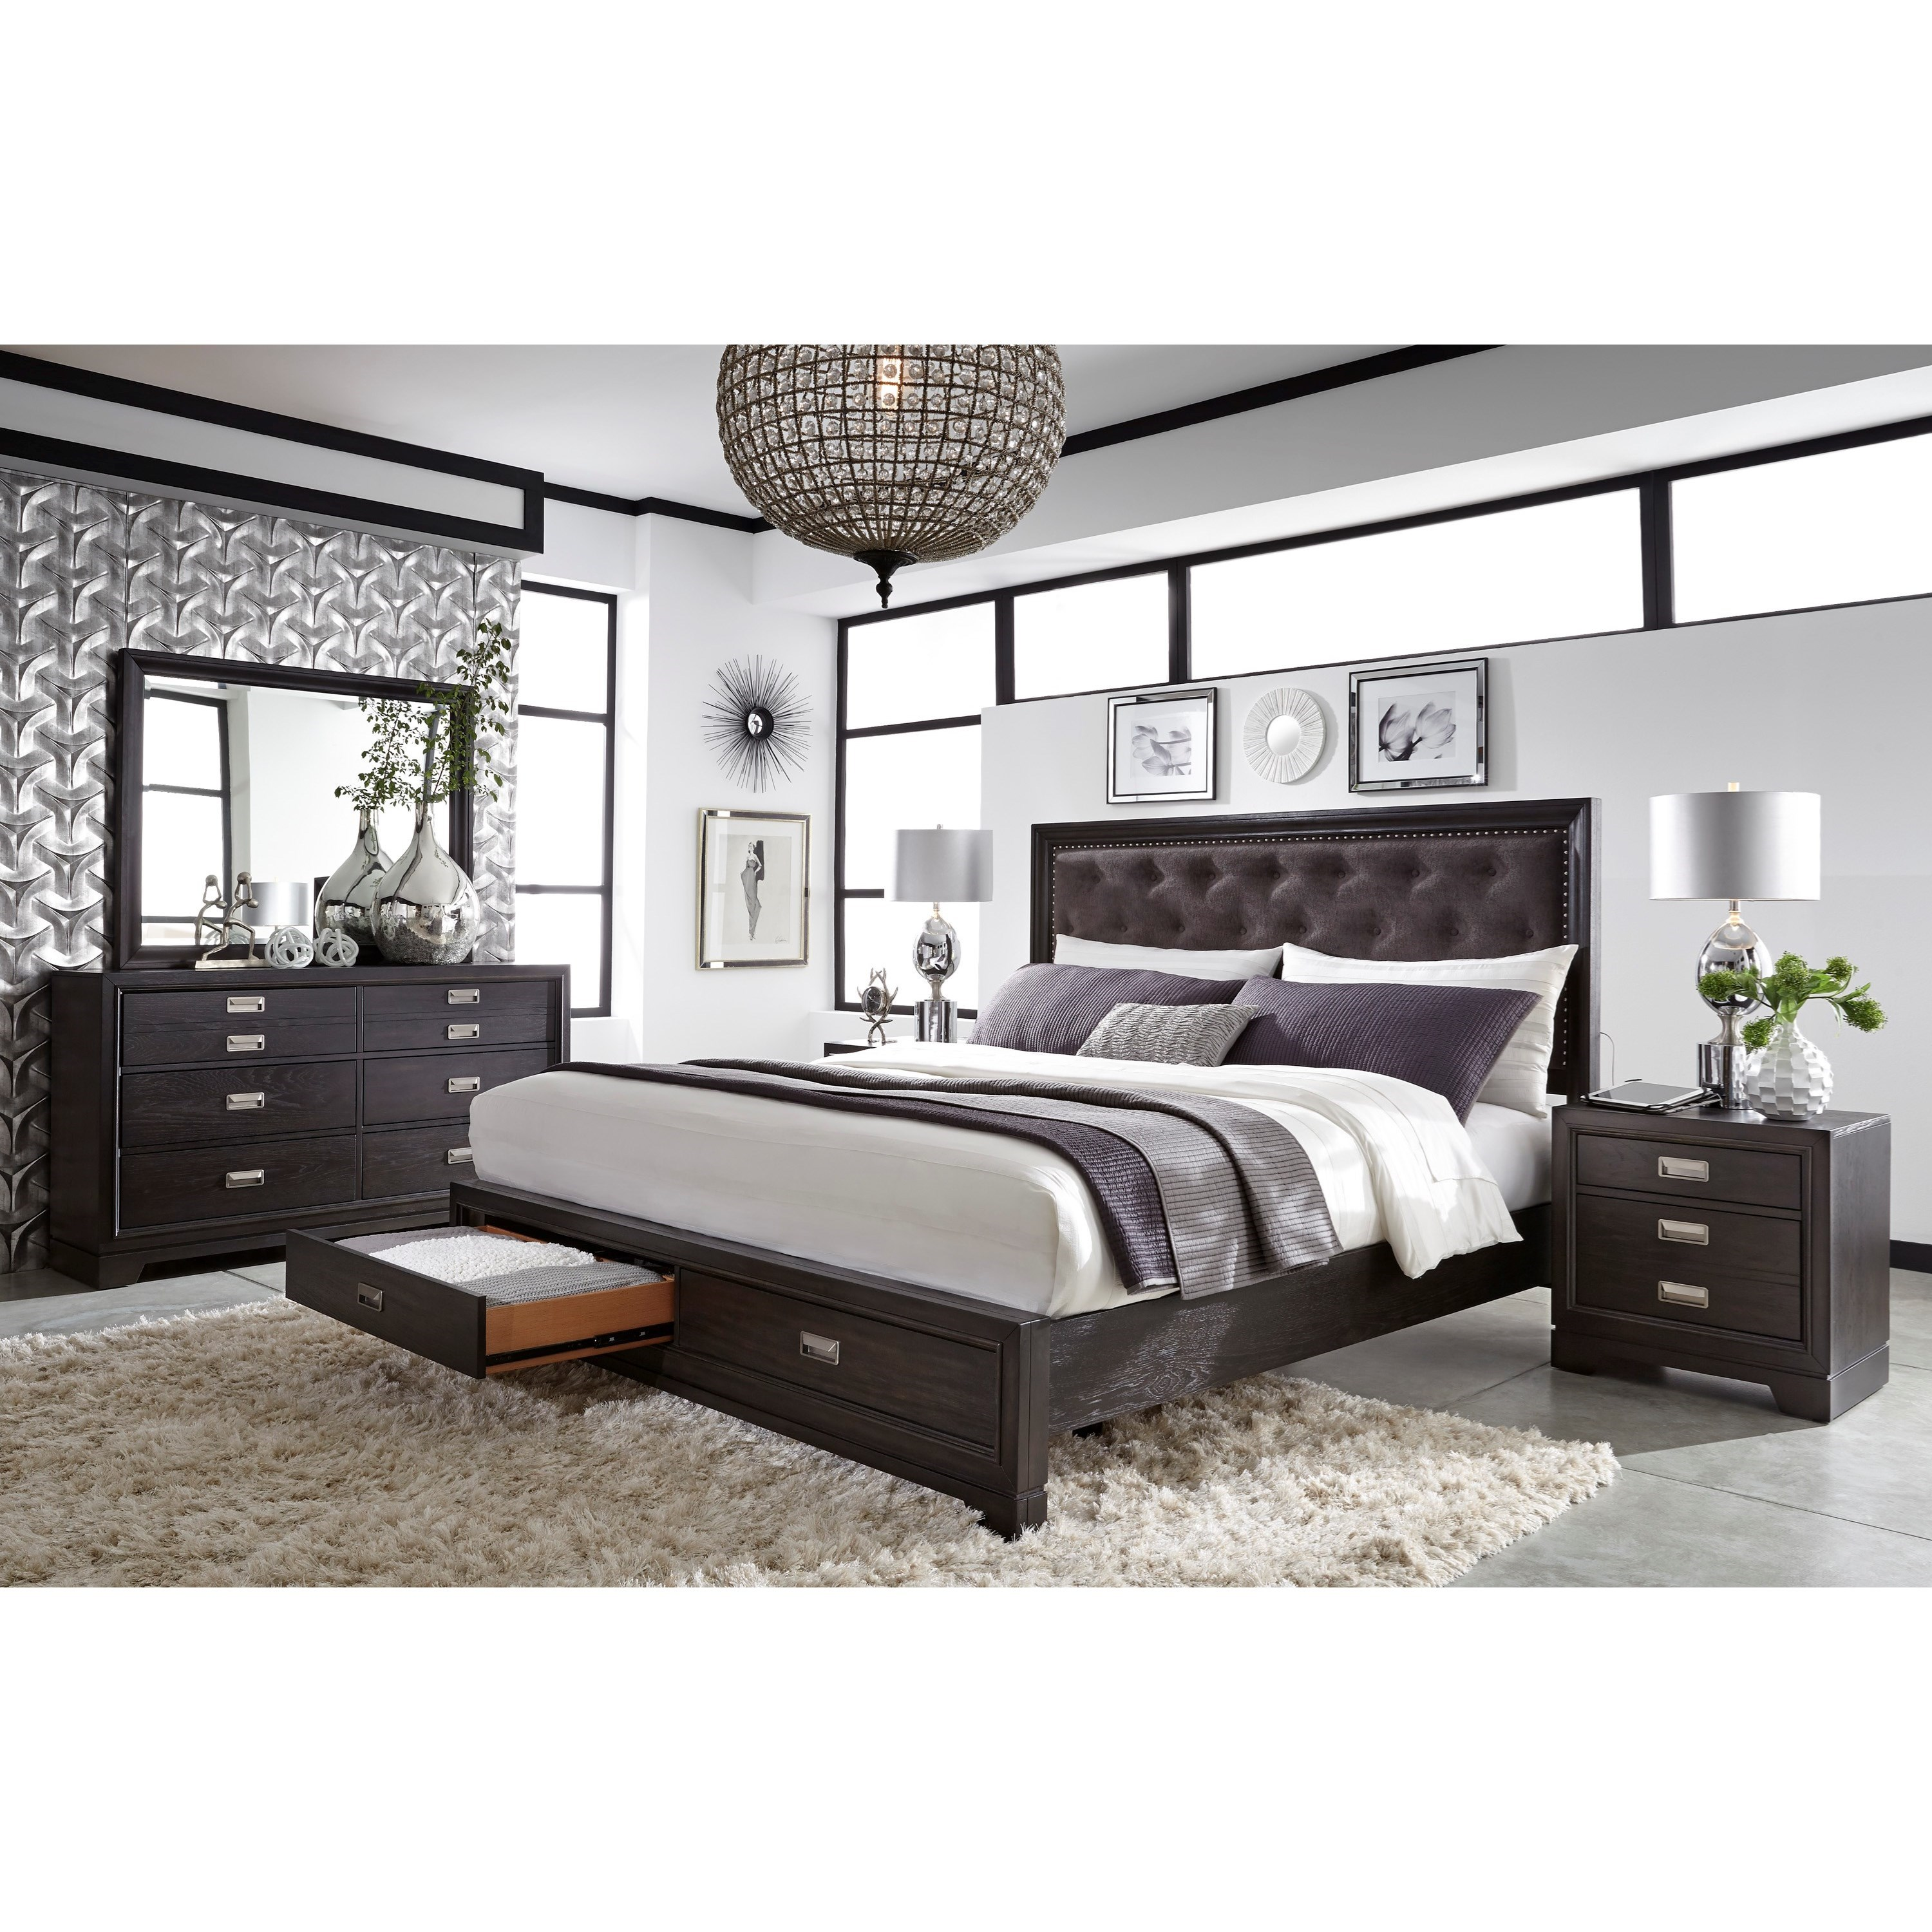 Front Street King Bedroom Group by Aspenhome at Baer's Furniture